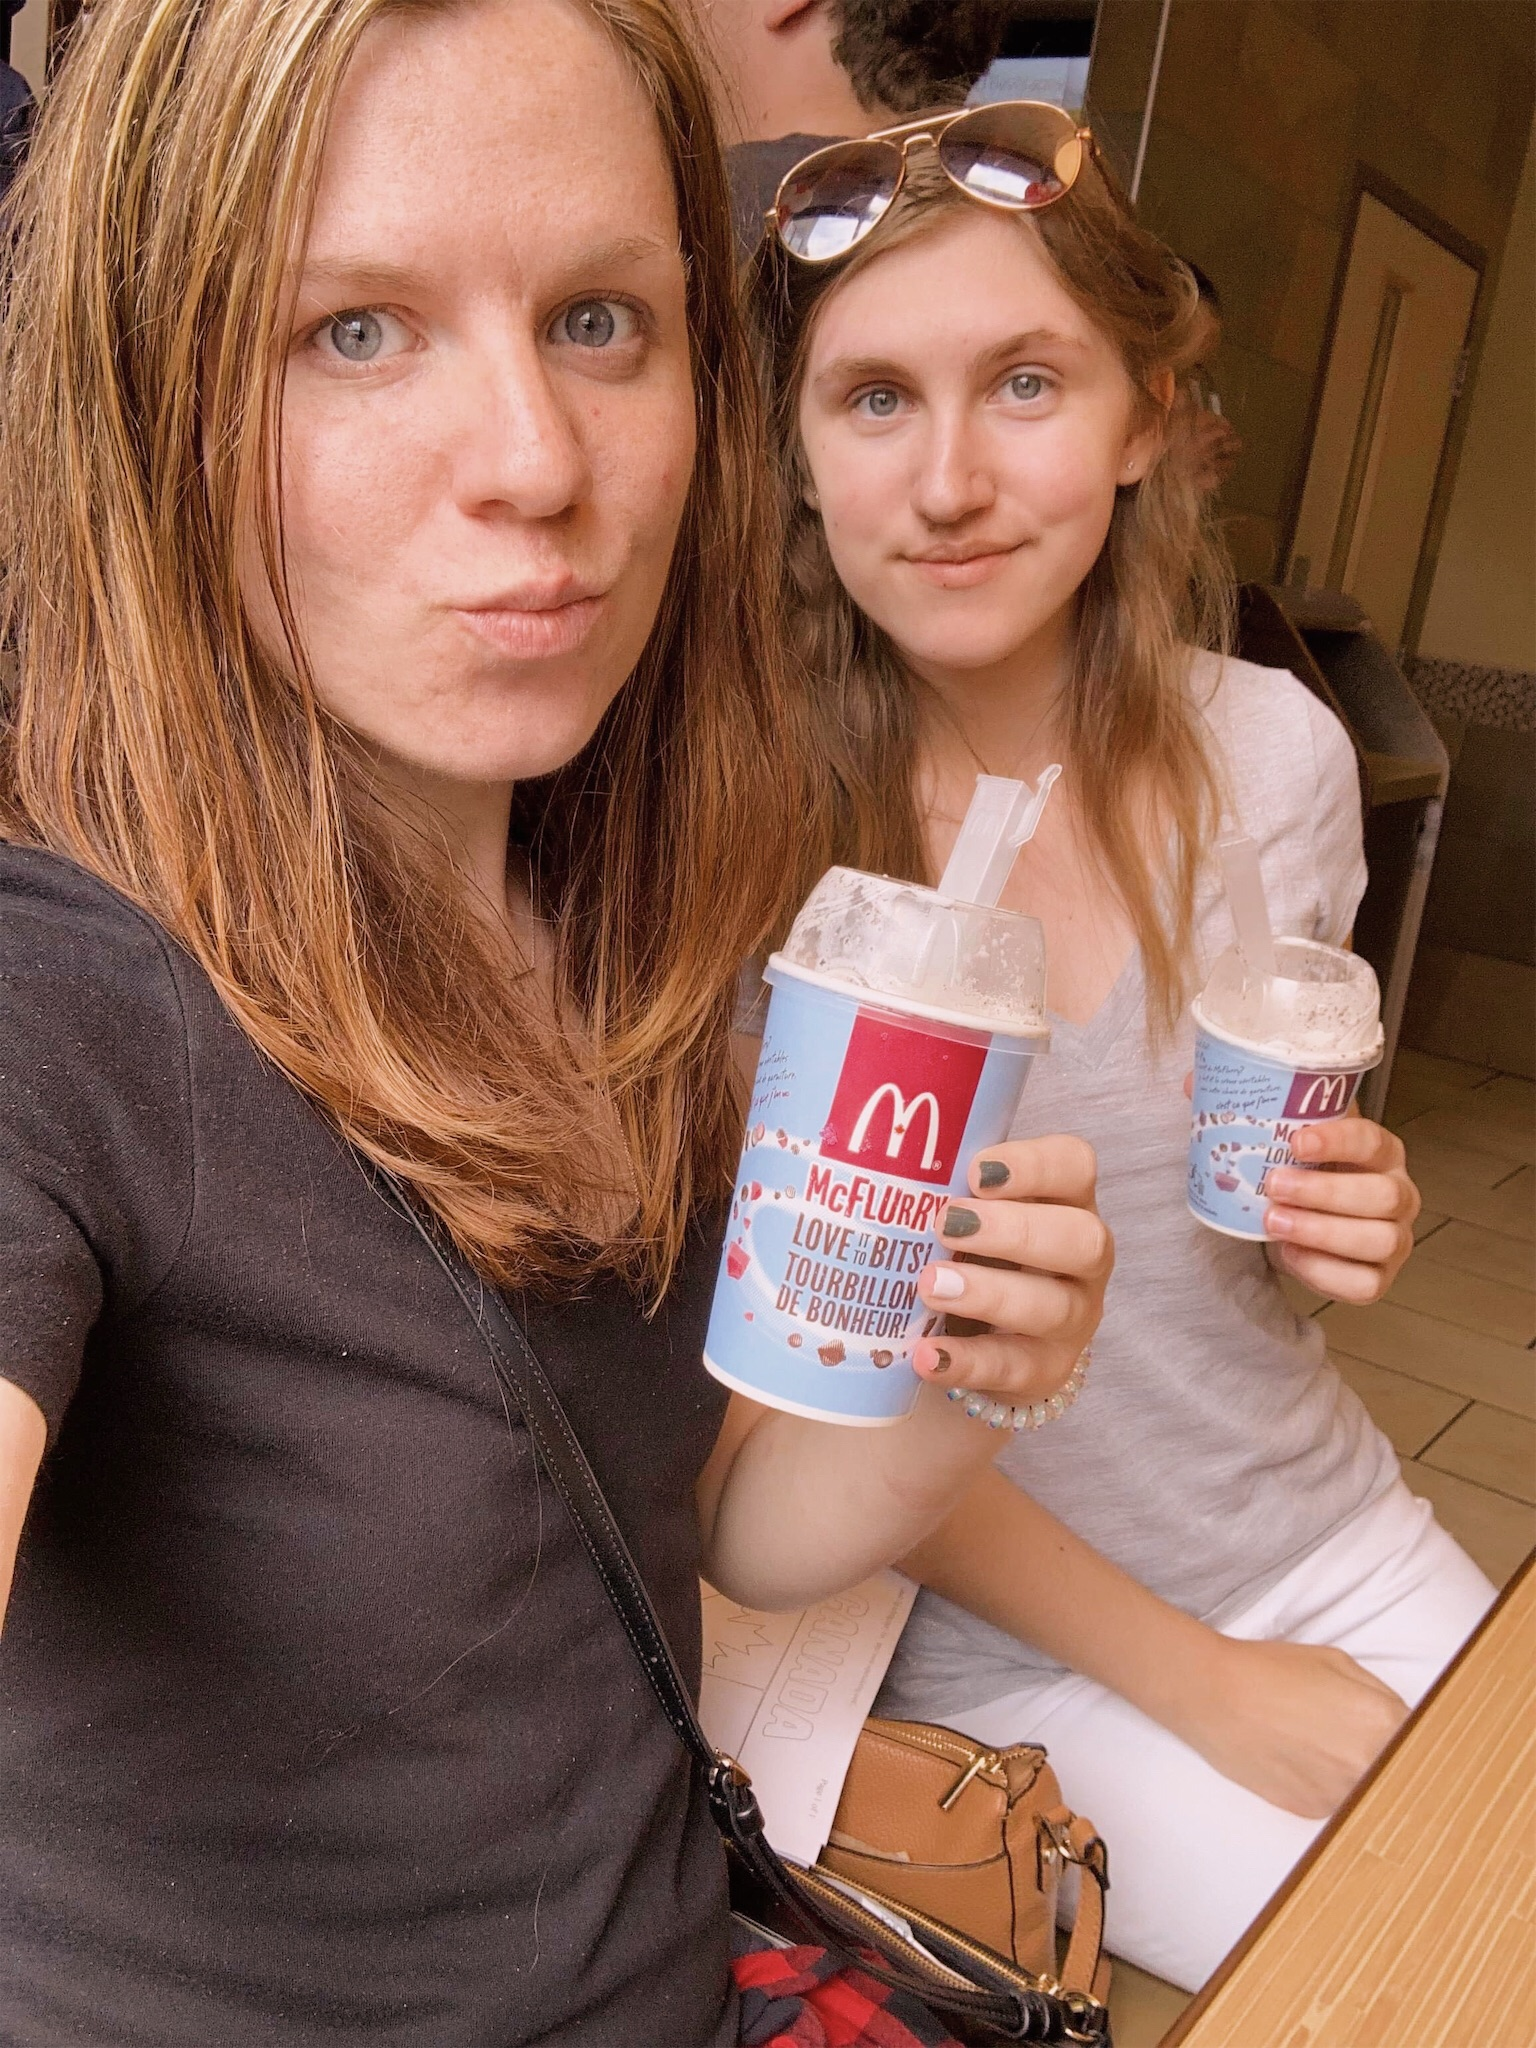 ashlee-kirsten-mcflurries.jpg